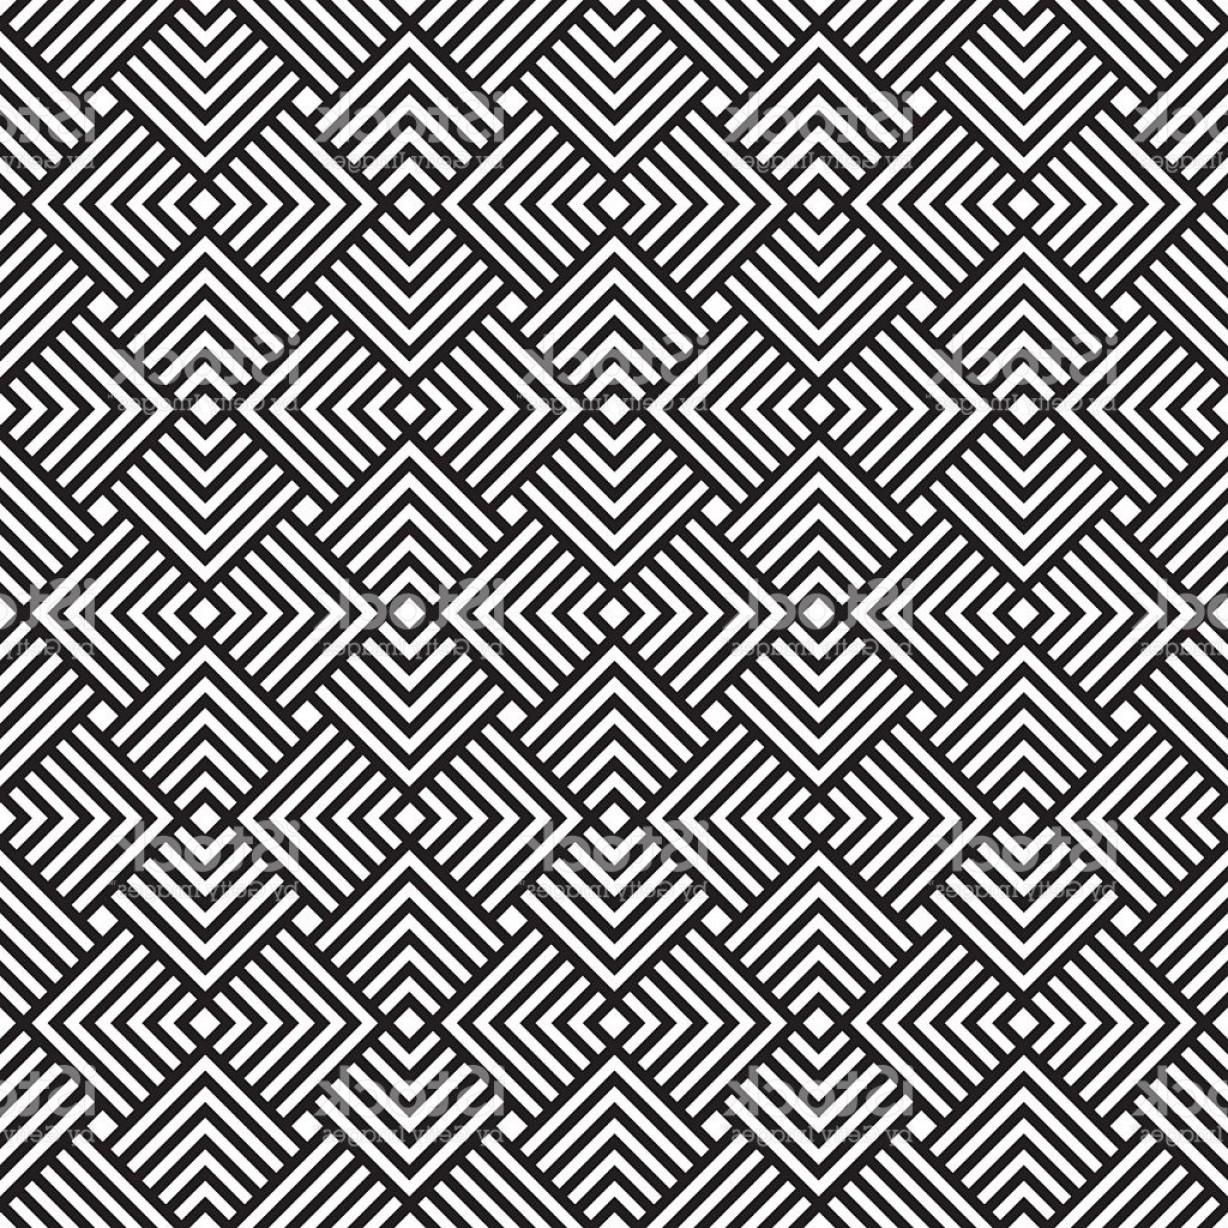 Free Abstract Vector Art: Abstract Seamless Black And White Art Deco Vector Pattern Gm